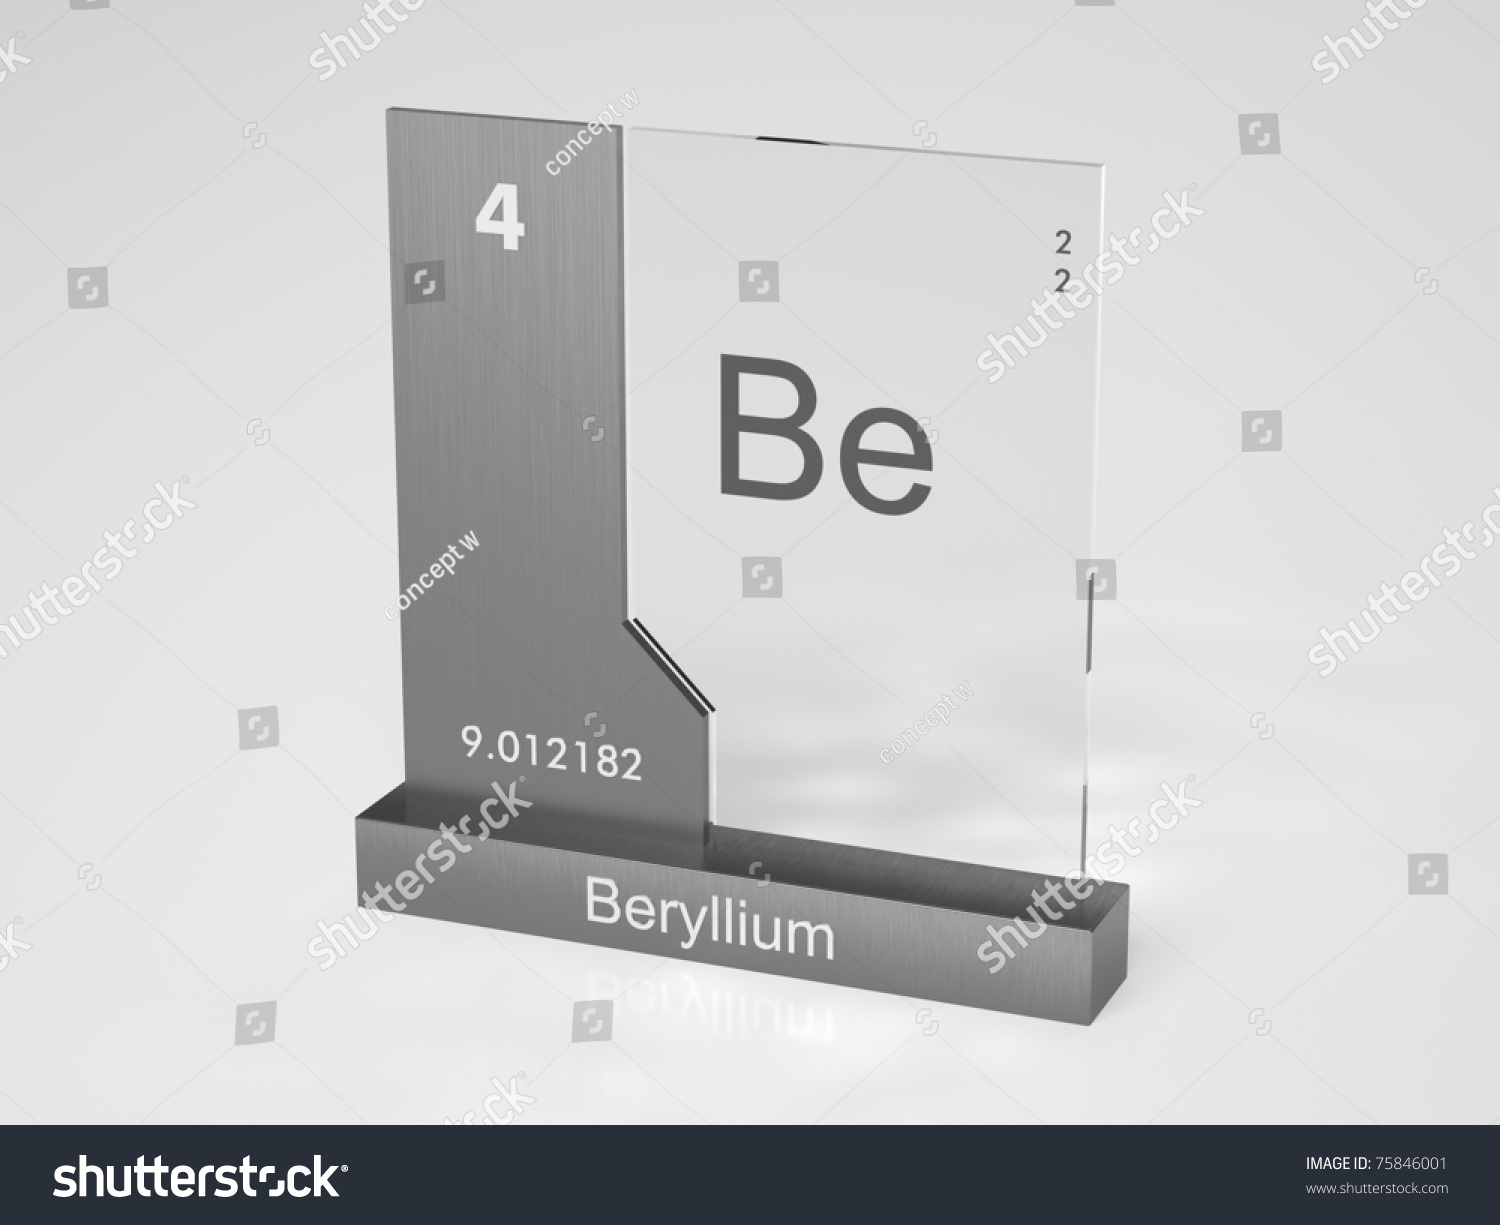 Beryllium symbol be chemical element periodic stock illustration beryllium symbol be chemical element of the periodic table buycottarizona Image collections